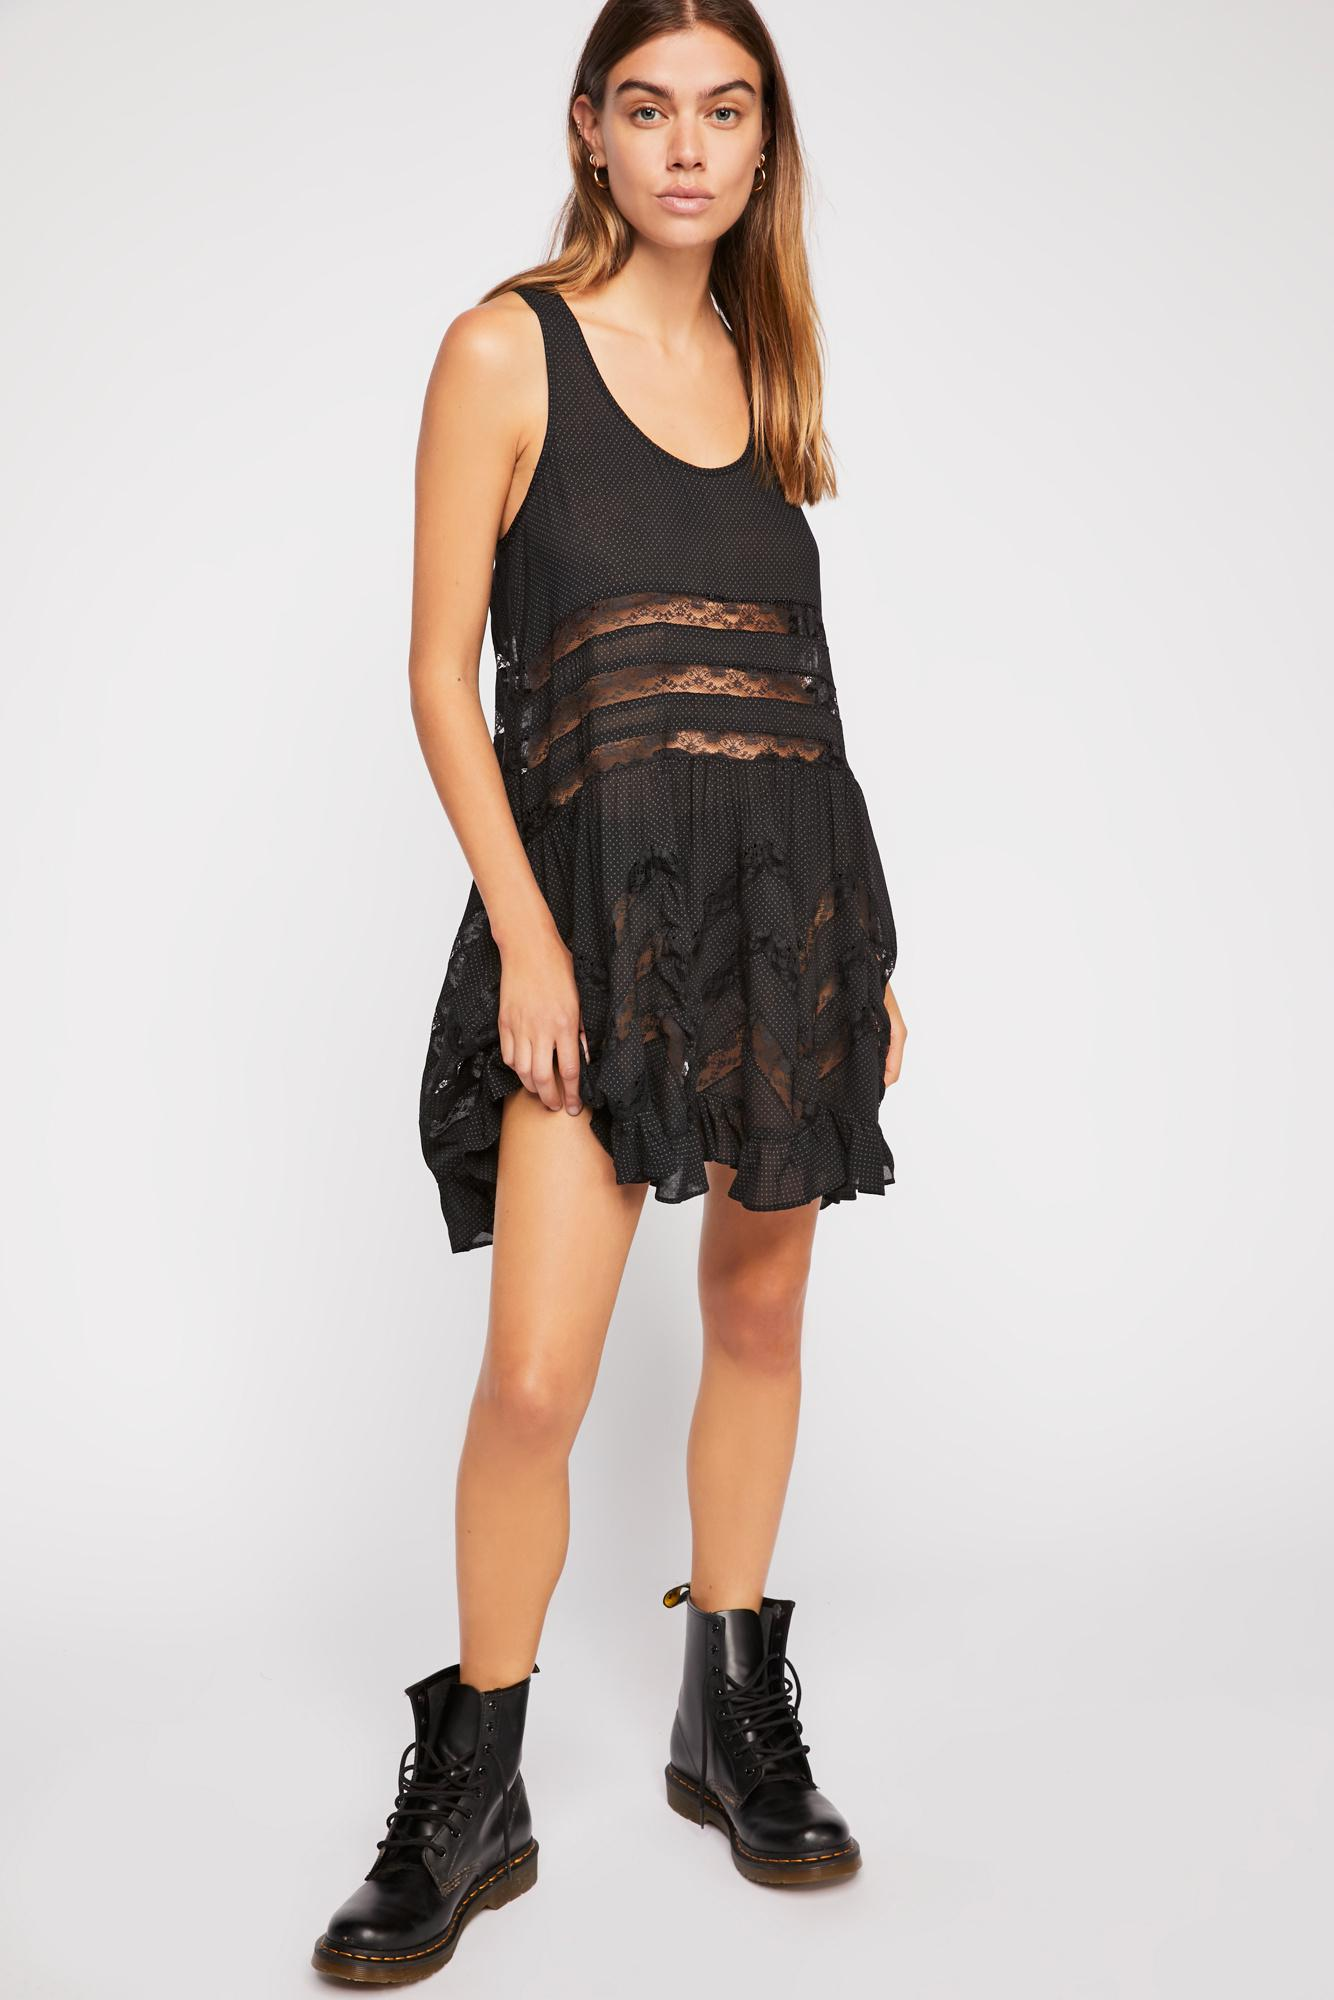 ec1f25bbda3 Free People - Black Voile And Lace Trapeze Slip By Intimately - Lyst. View  fullscreen